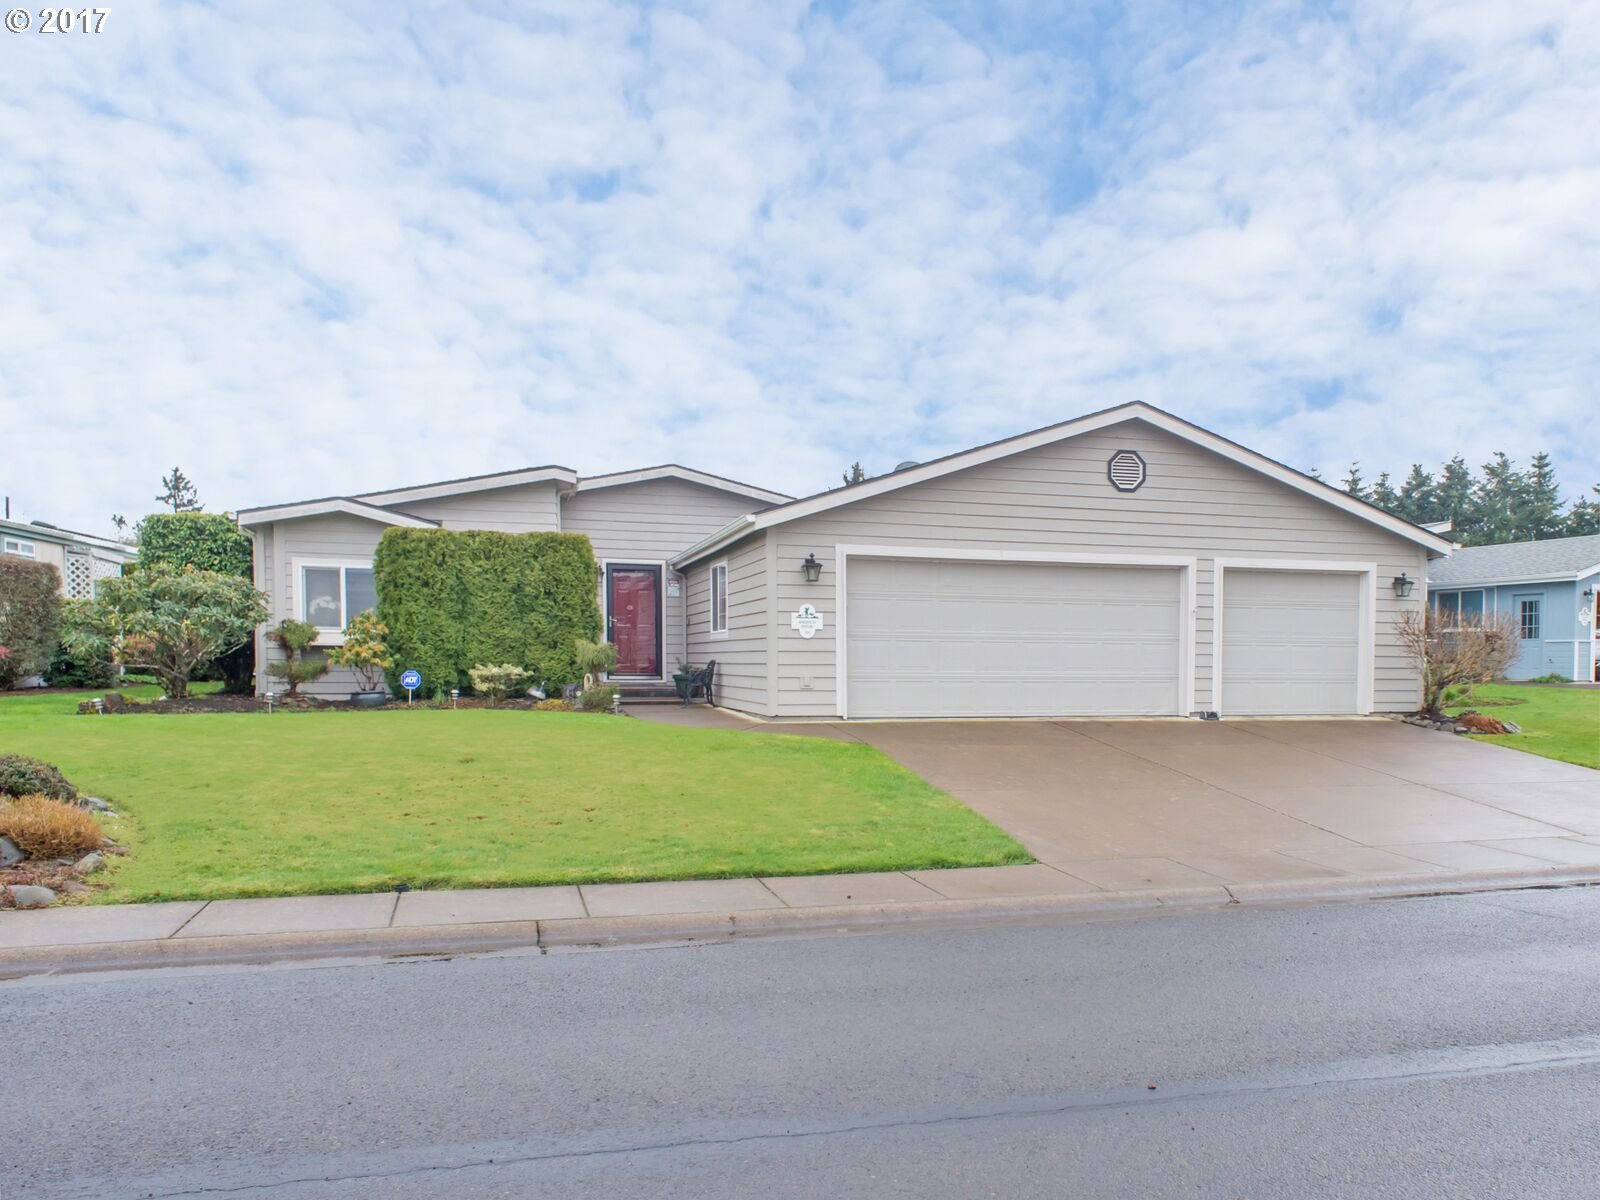 111 ANDREW DR, Cottage Grove, OR 97424